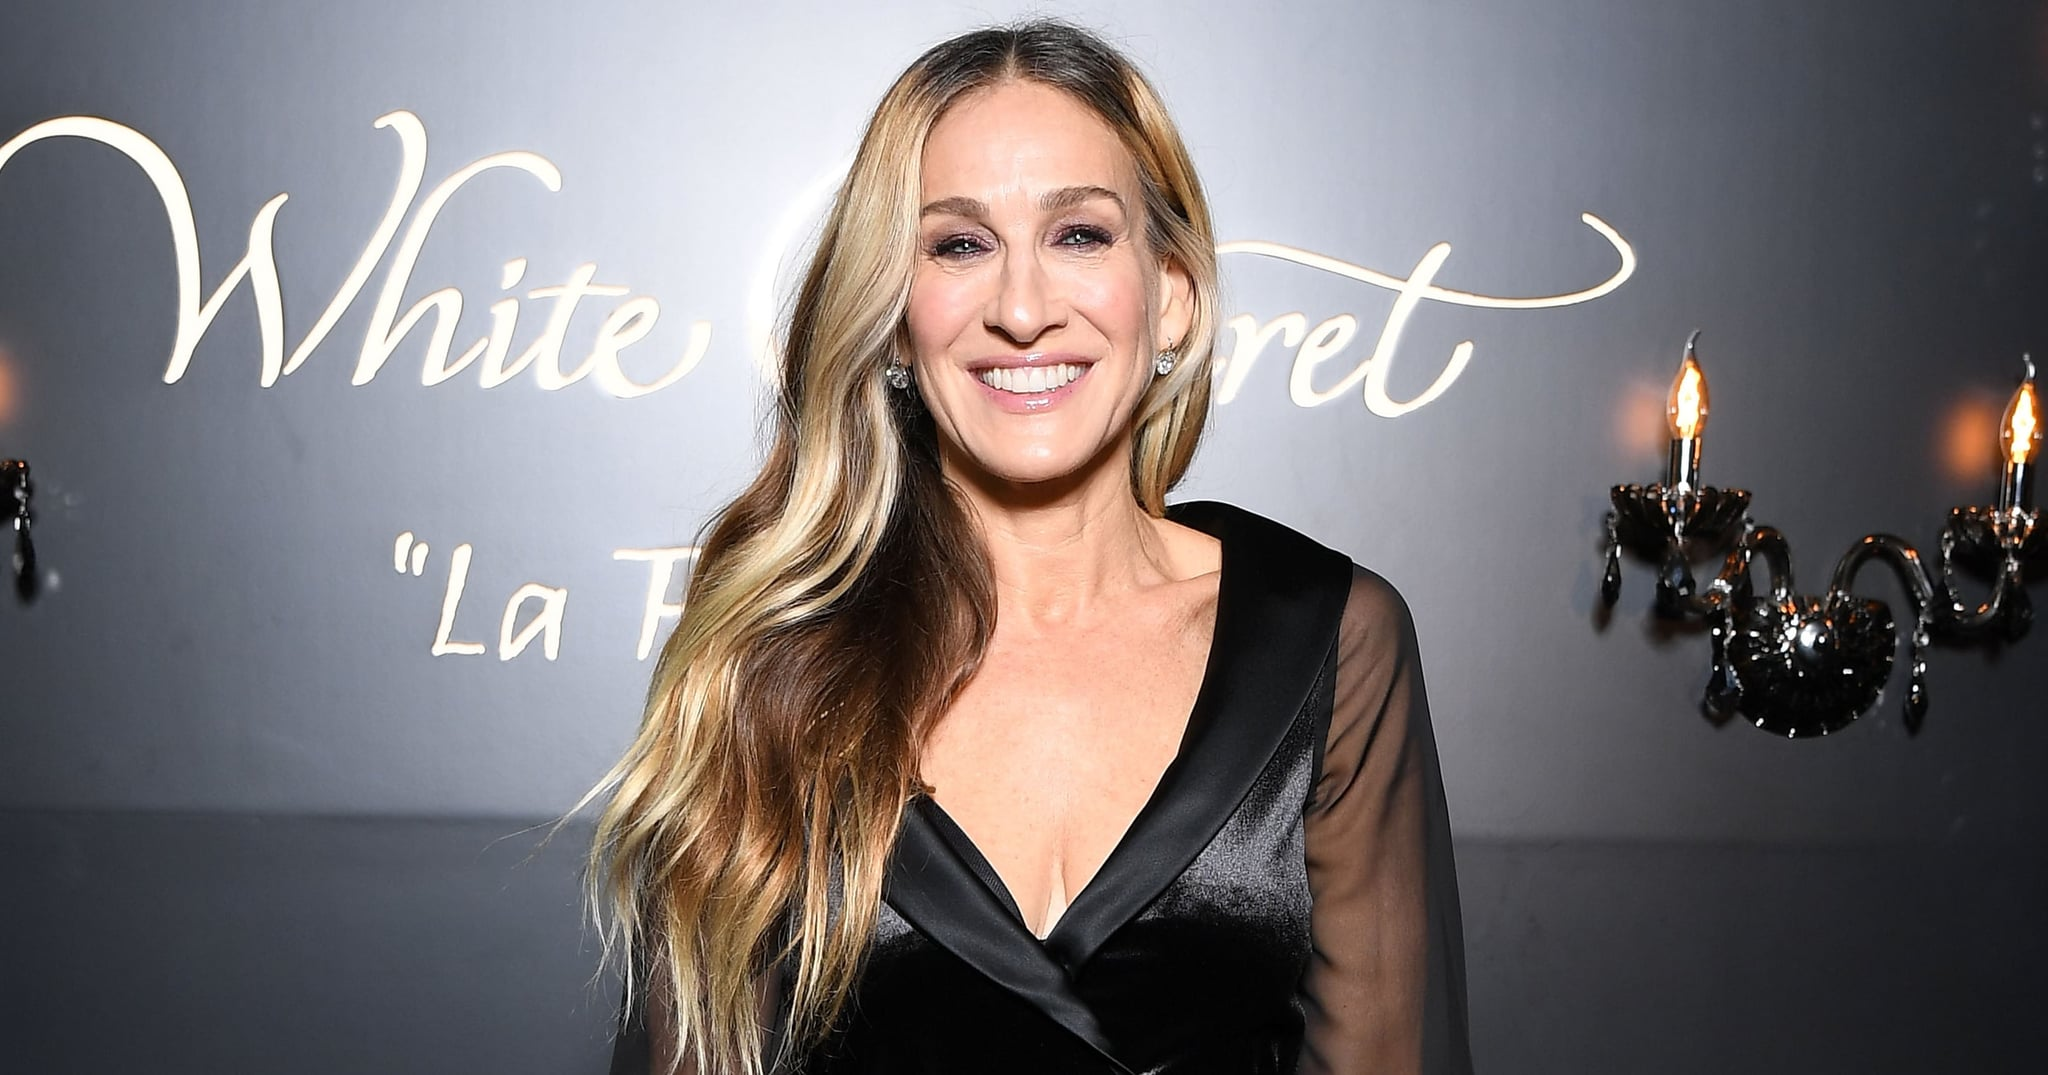 Oh No! Sarah Jessica Parker's Pumpkins Were Stolen From Her NYC Home